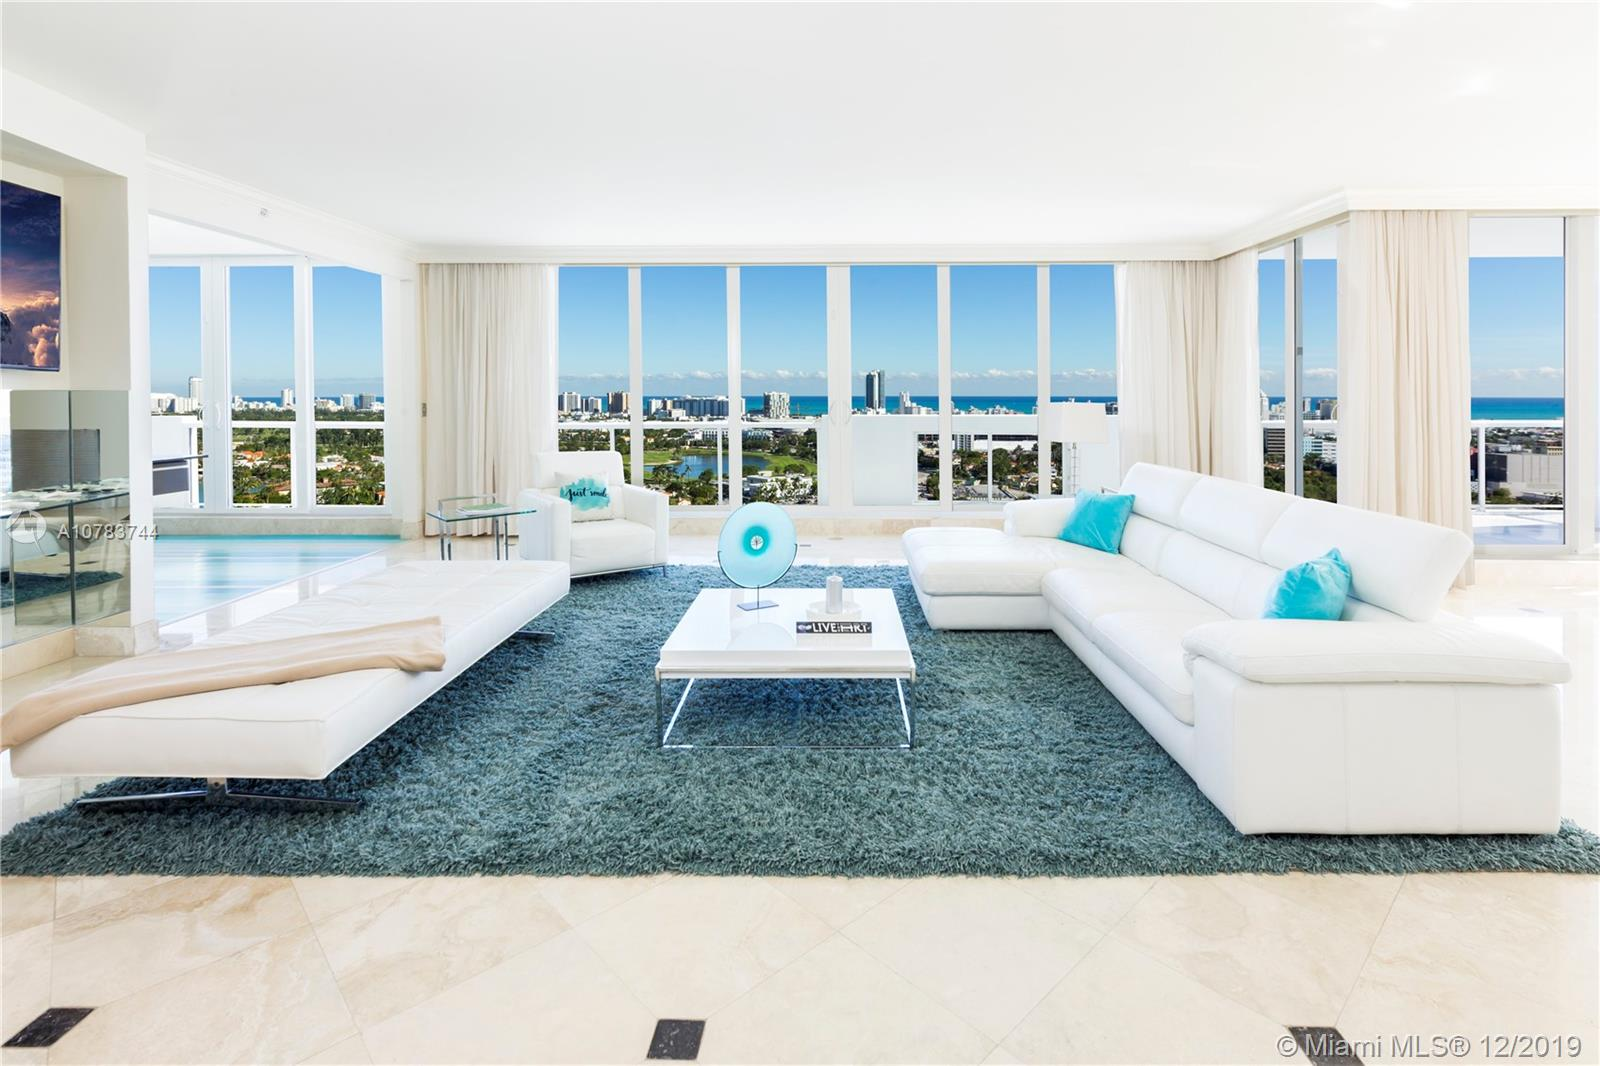 1900 Sunset Harbour Dr, TS03 - Miami Beach, Florida